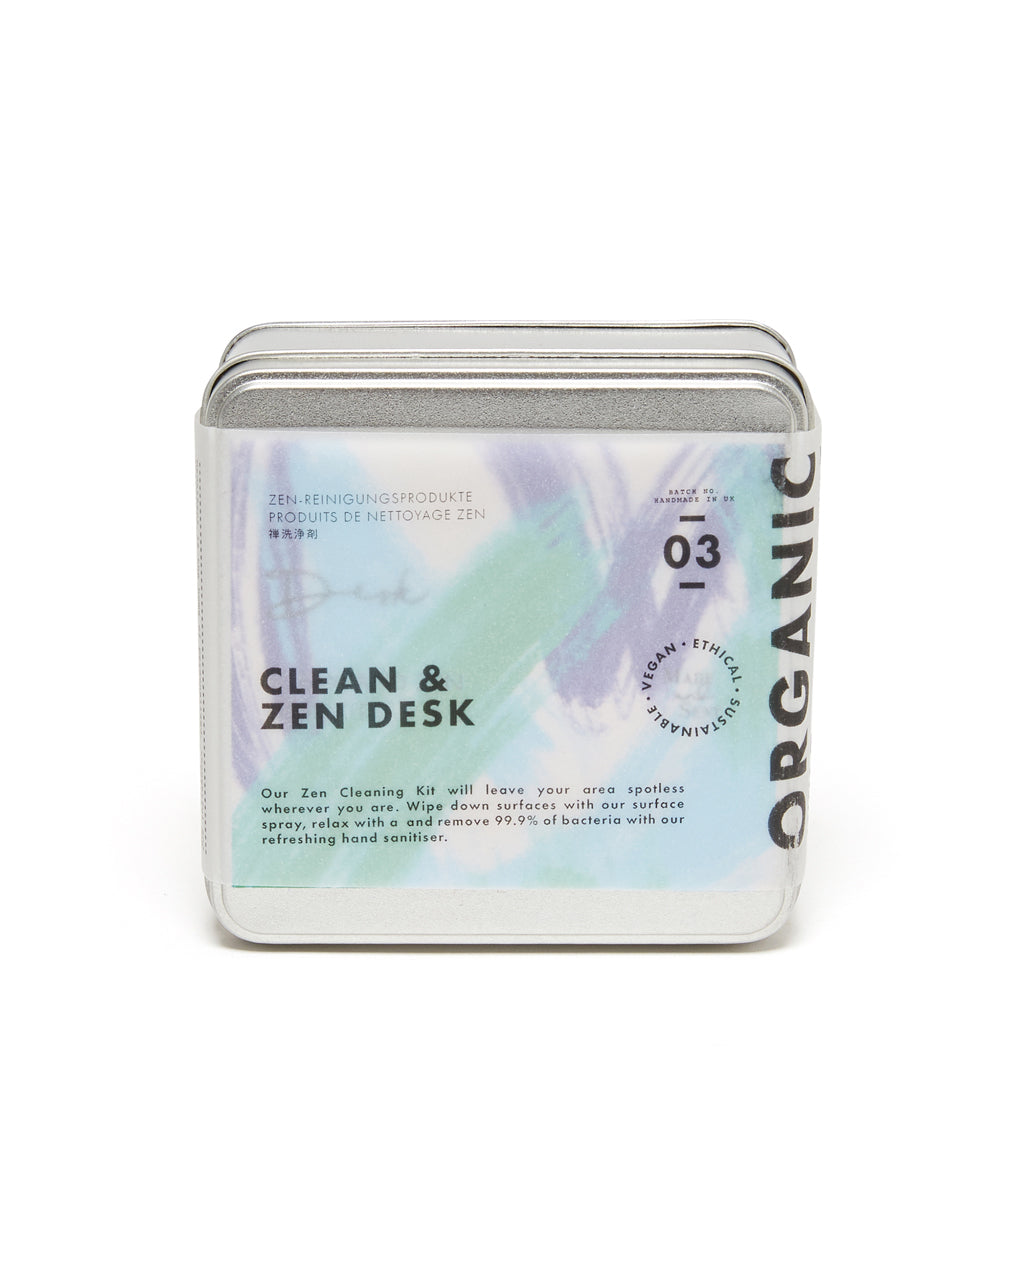 clean & zen desk kit in tin packaging